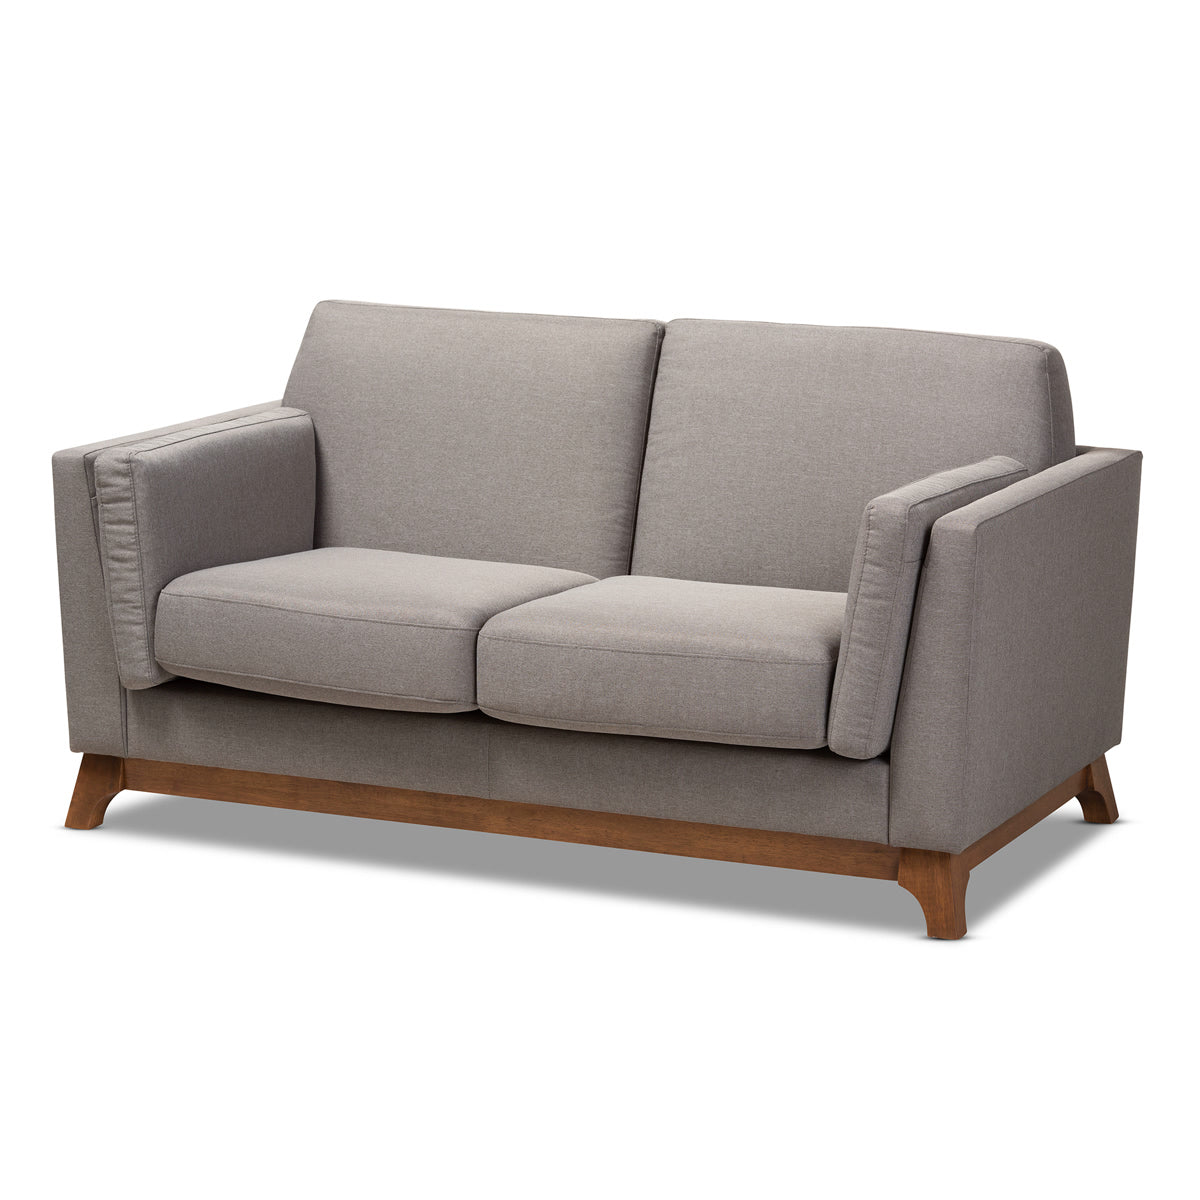 Baxton Studio Sava Mid-Century Modern Grey Fabric Upholstered Walnut Wood 2-Seater Loveseat Baxton Studio-loveseat-Minimal And Modern - 1